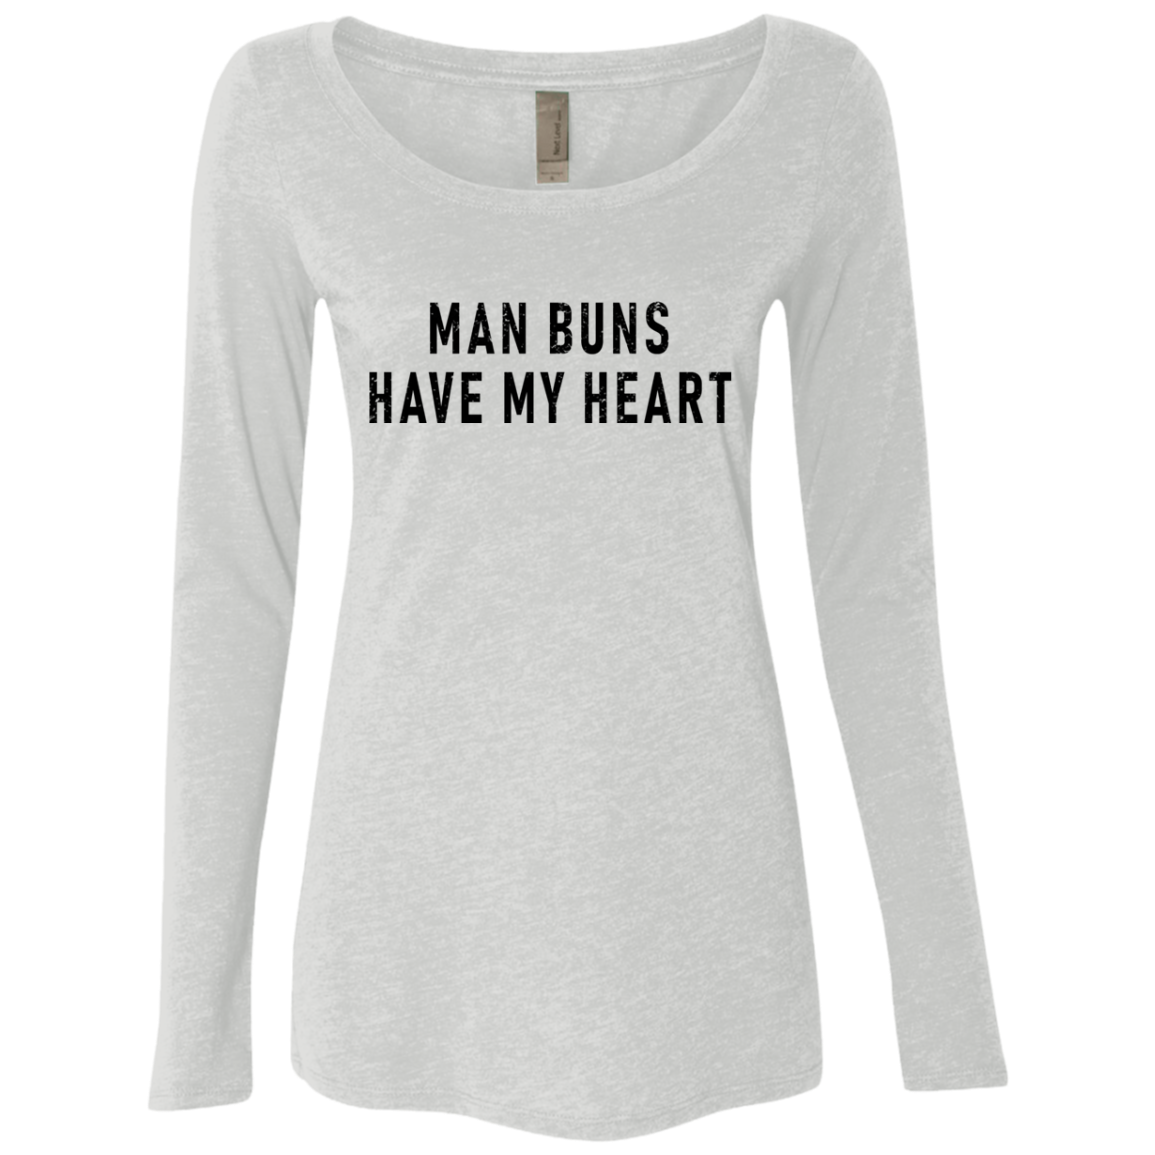 Man Buns Have My Heart Women's Long Sleeve Tee